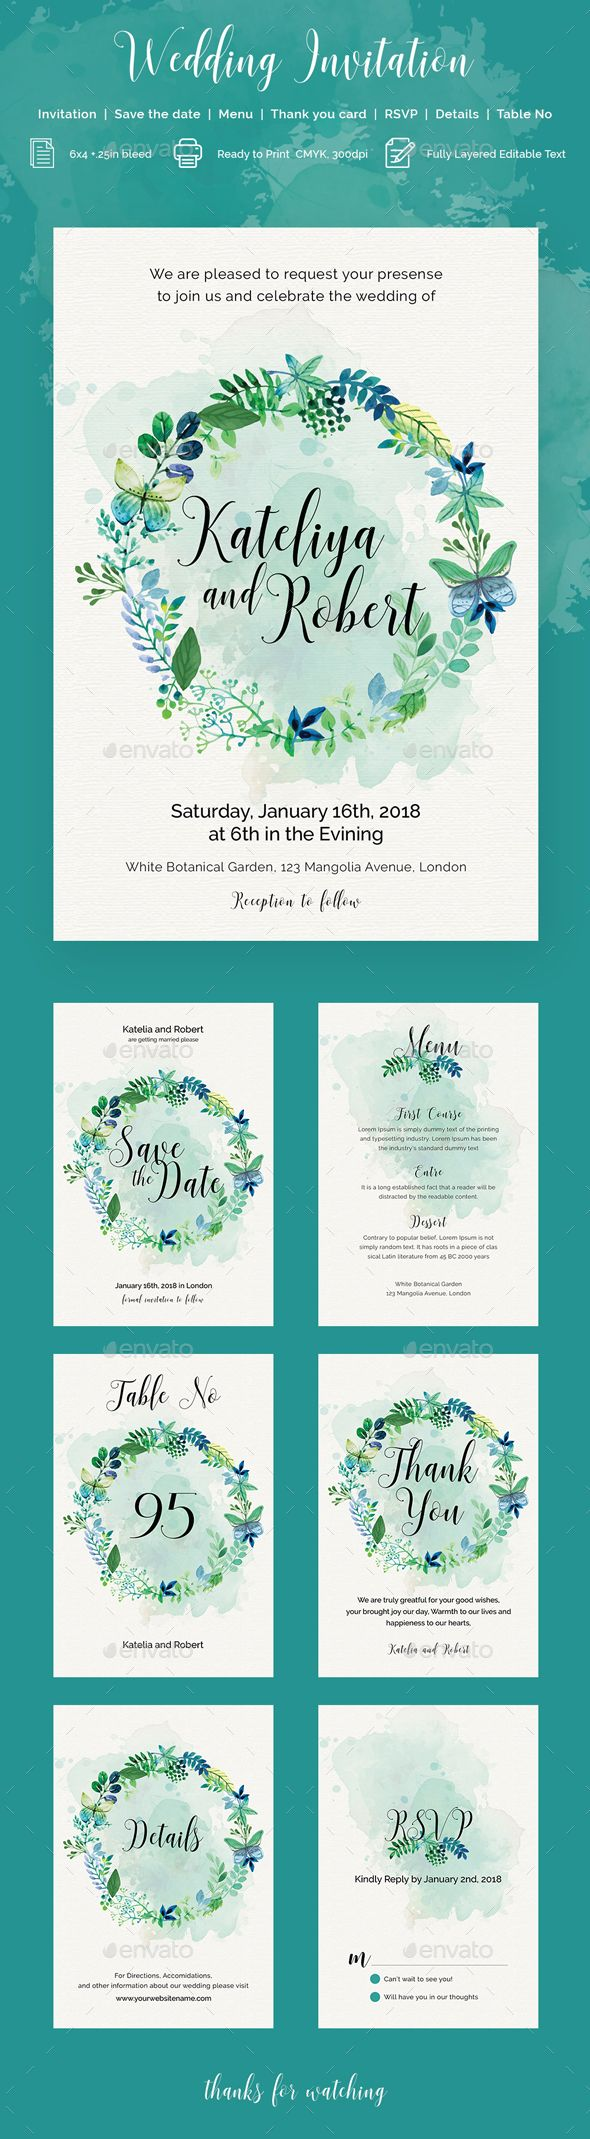 standard size wedding invitation%0A Wedding Invitation